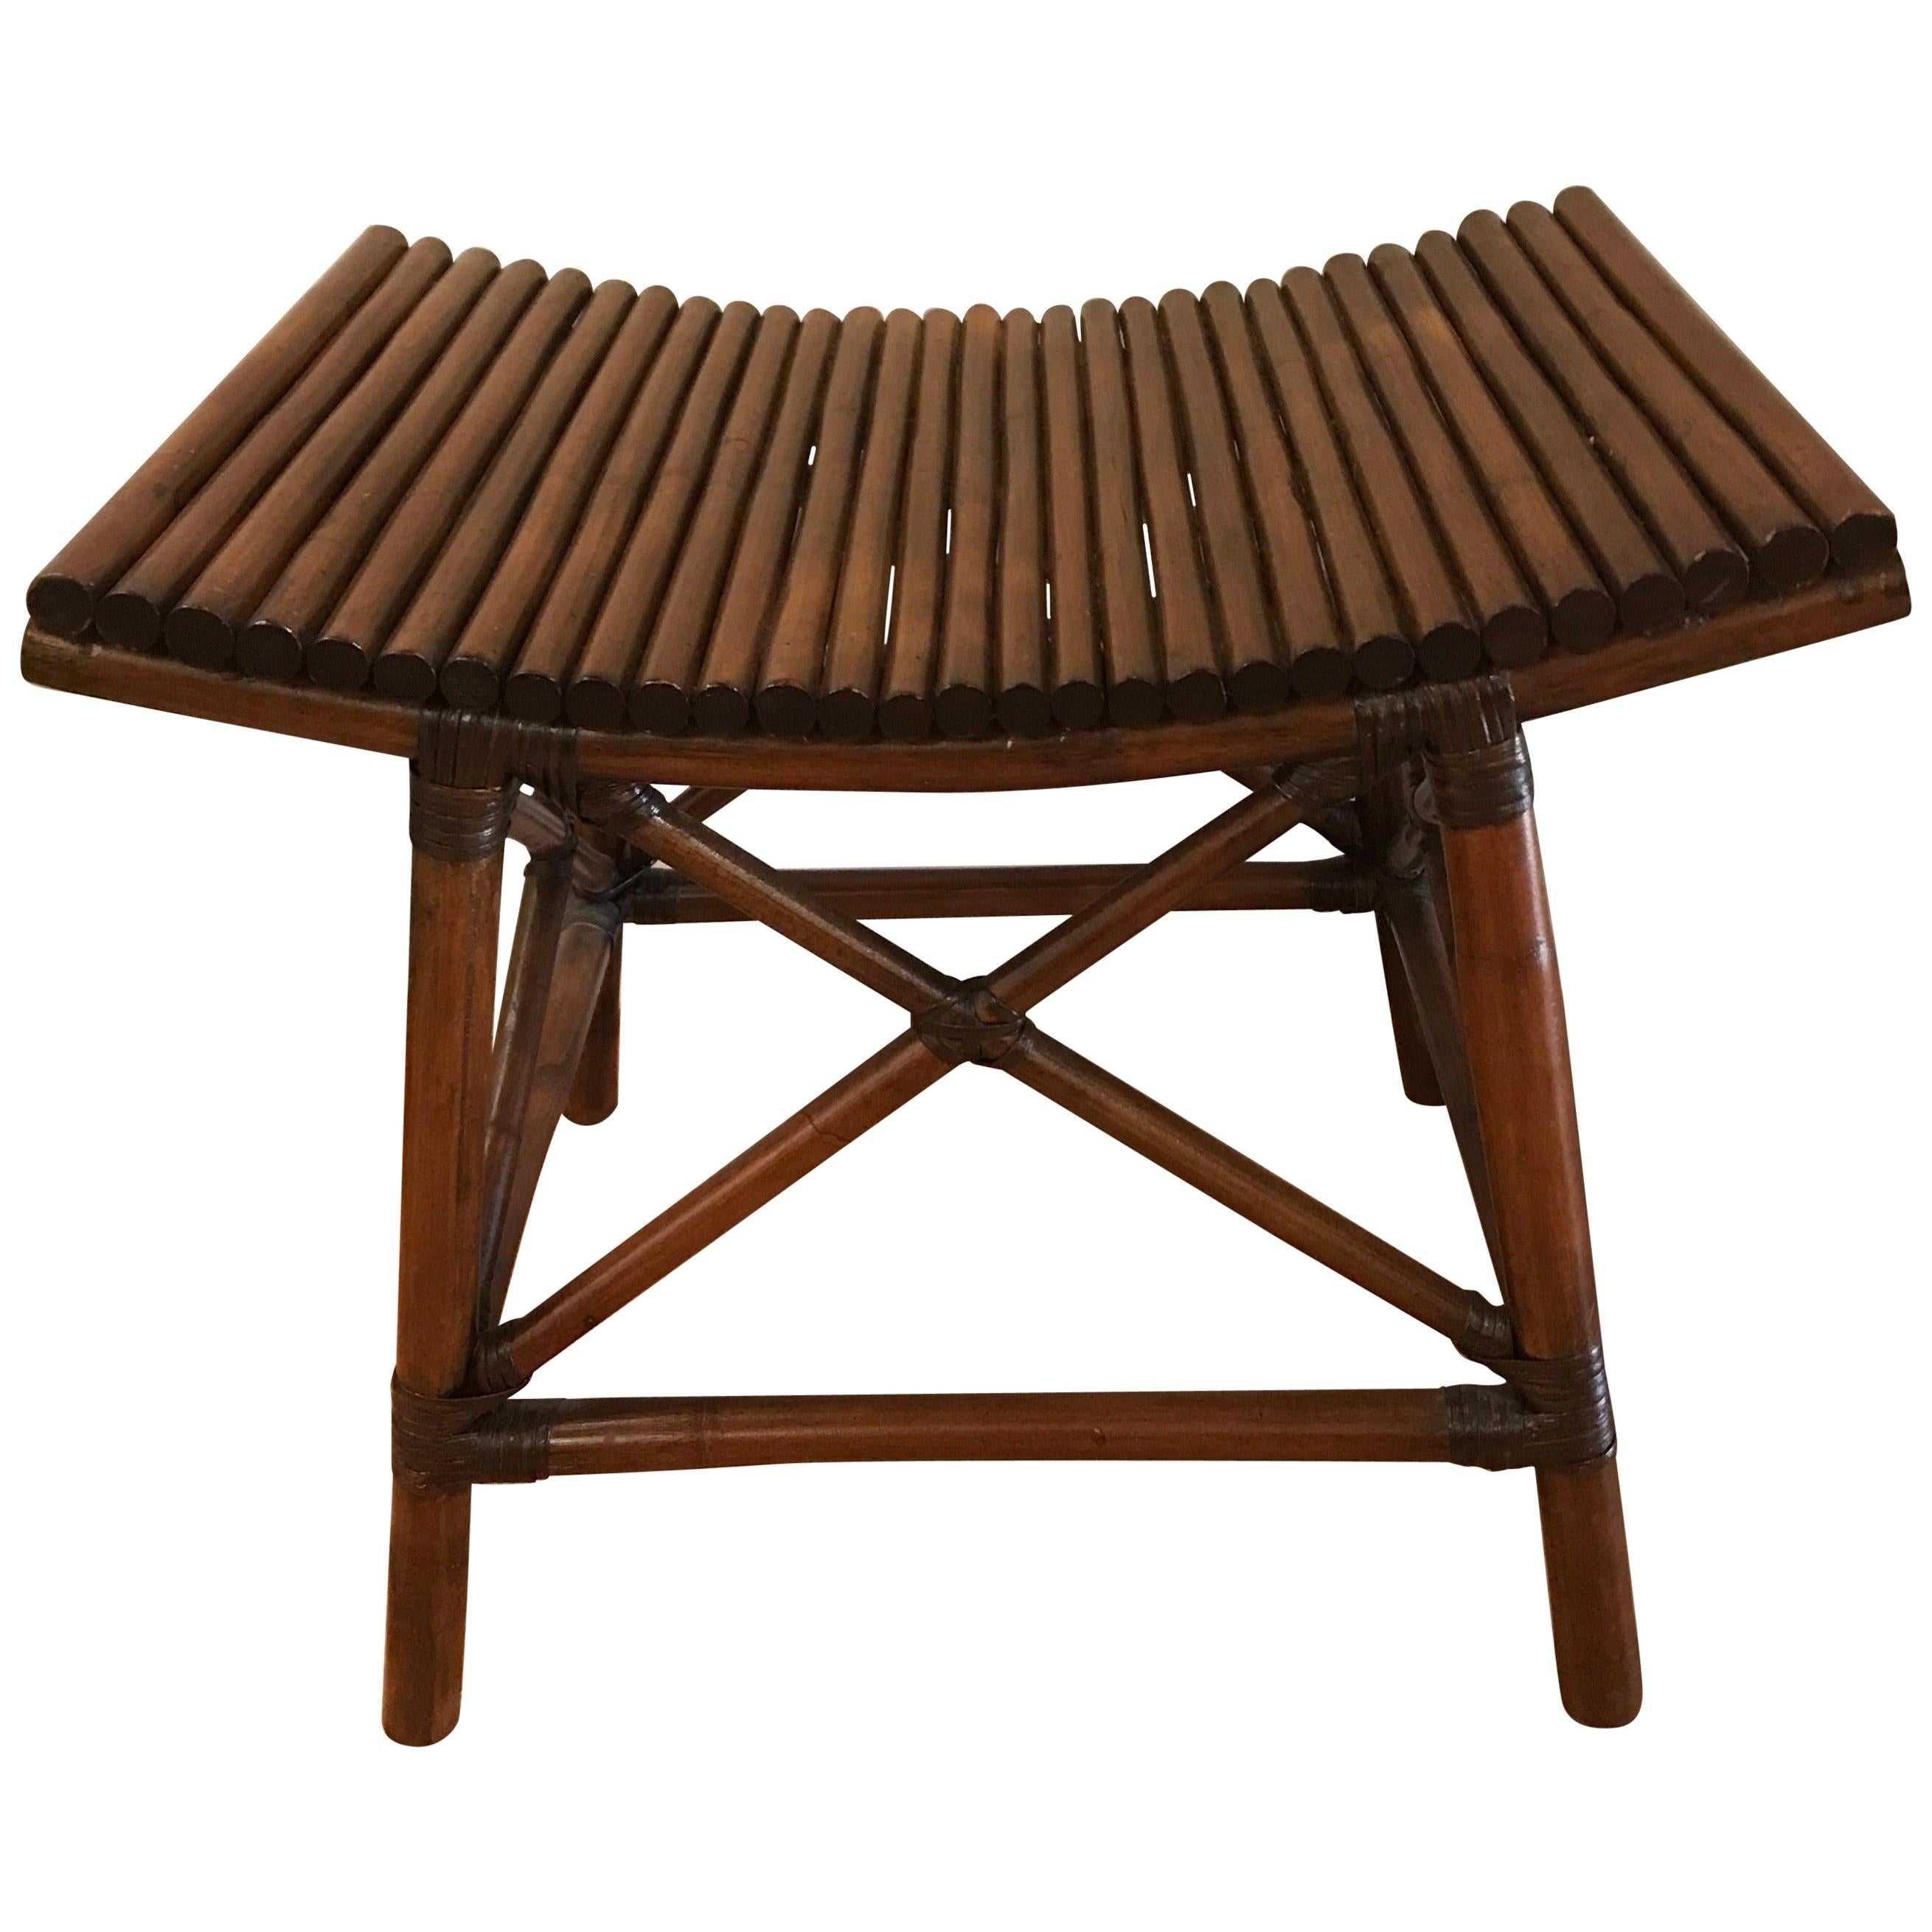 Faux Bamboo Thebes Style Bench